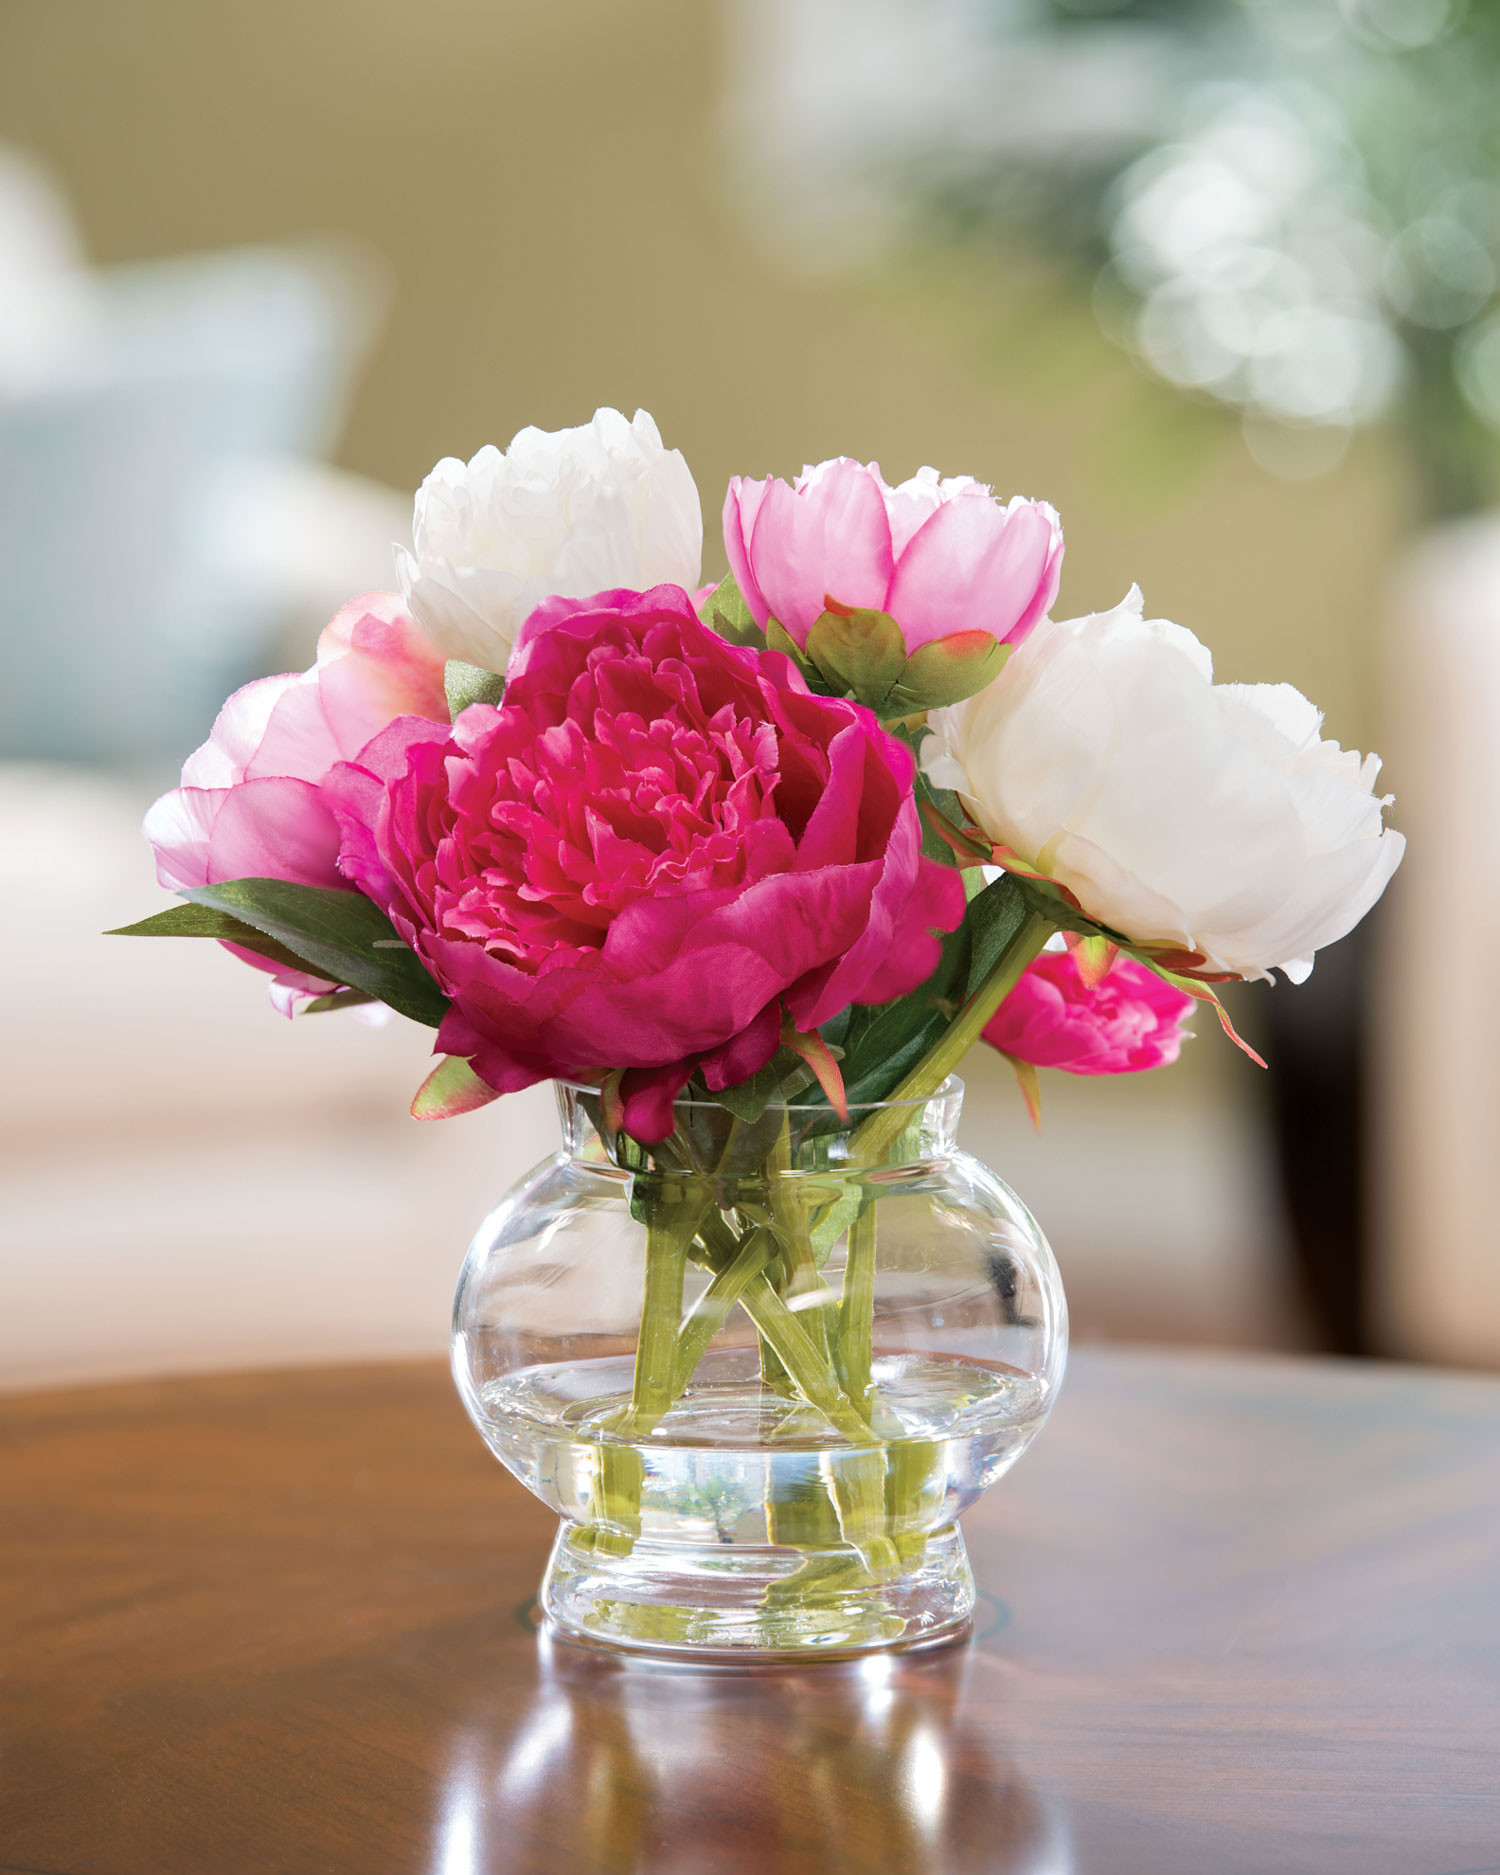 19 Ideal Silk Flowers In Vase with Fake Water